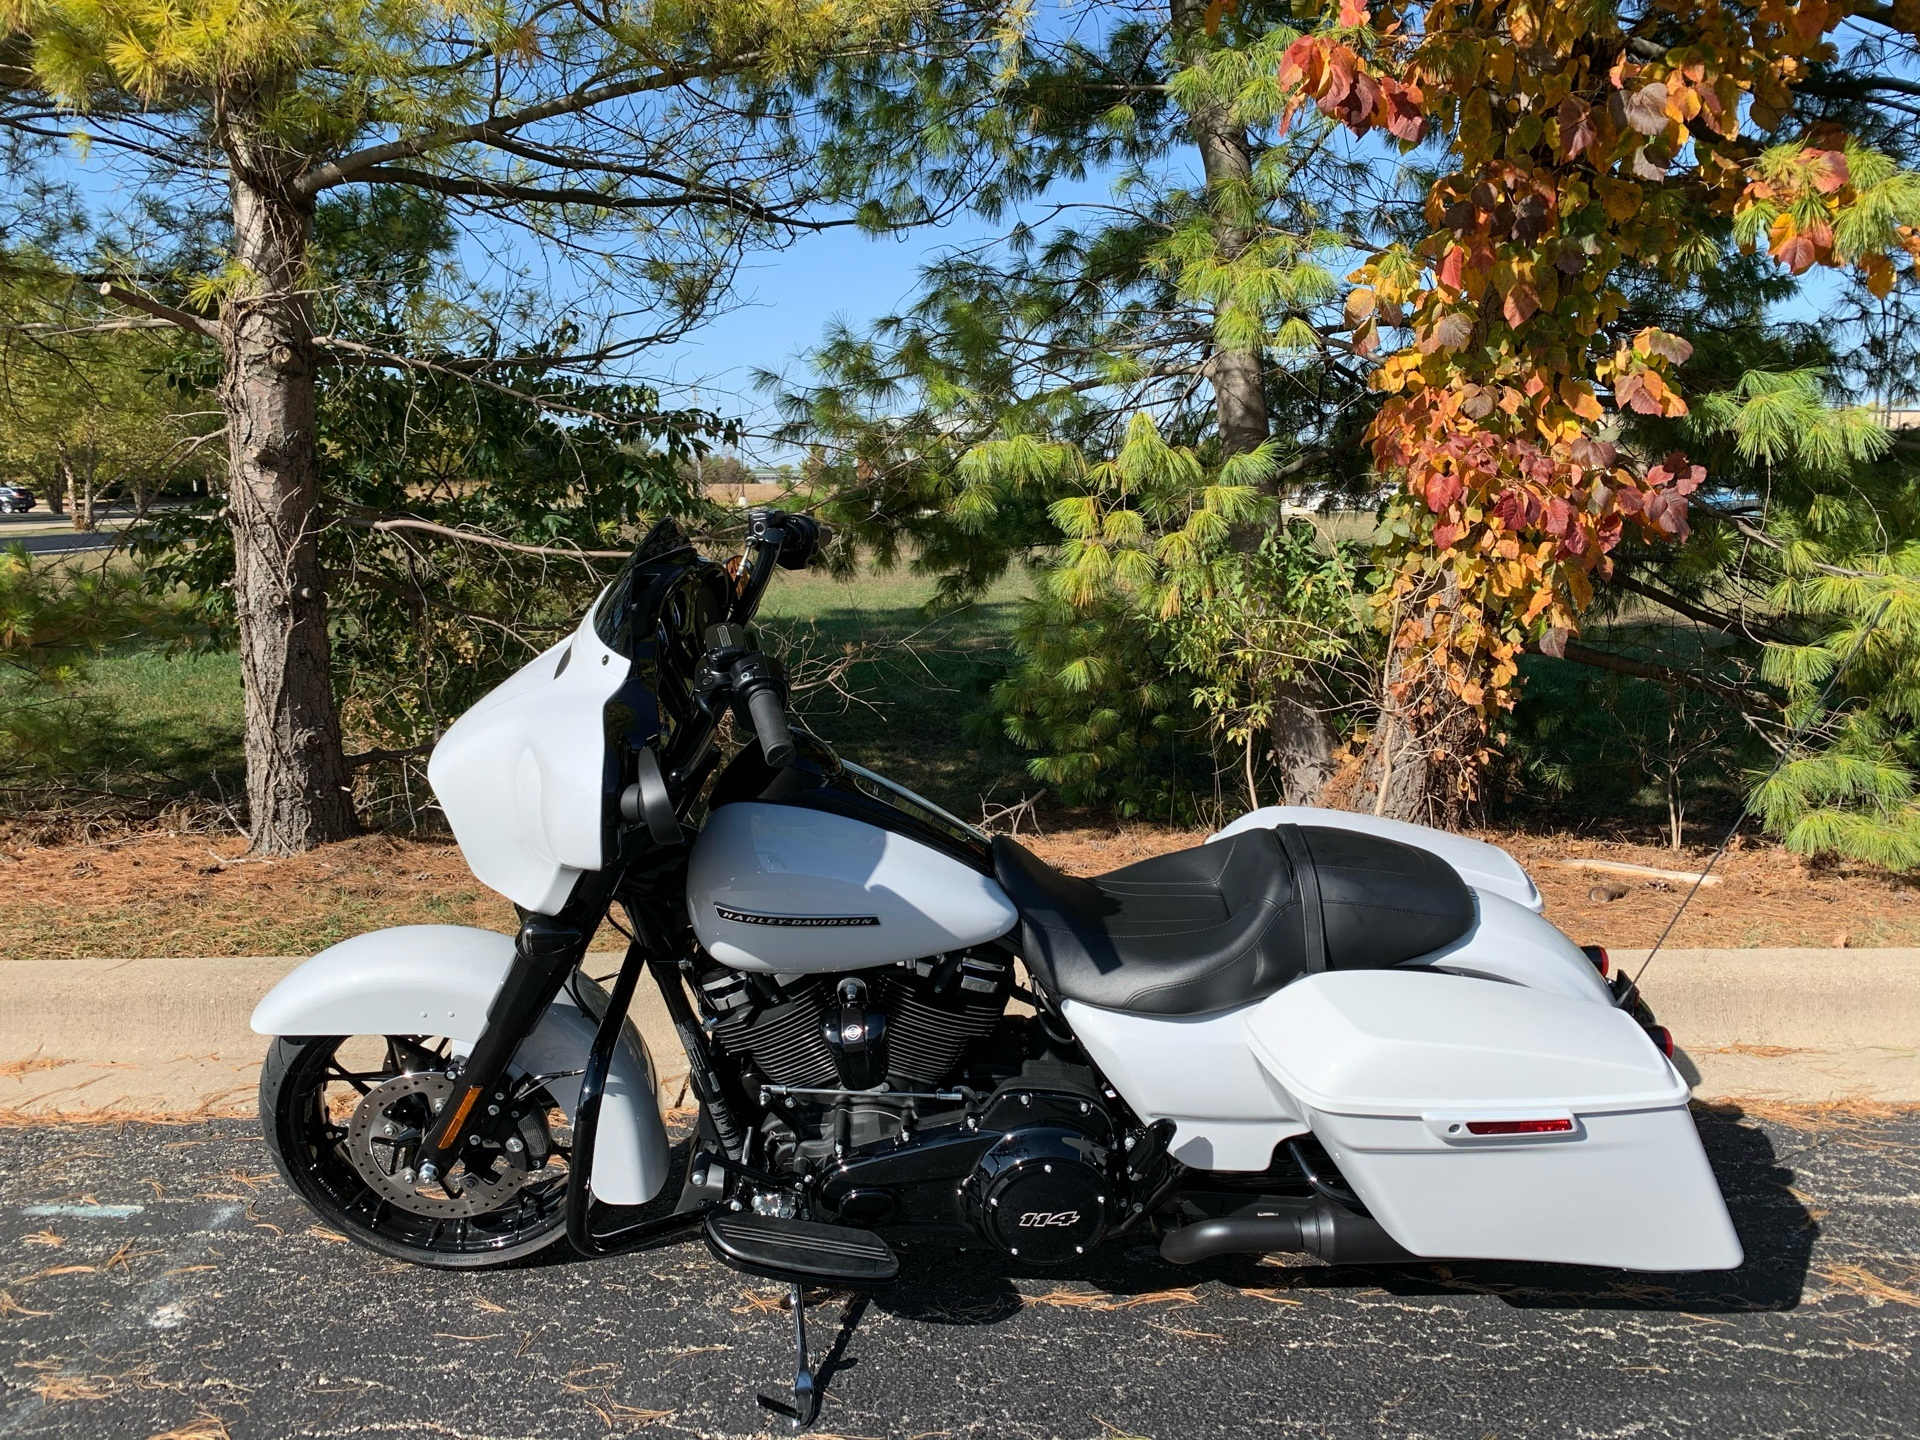 2020 Harley-Davidson Street Glide Special in Forsyth, Illinois - Photo 4